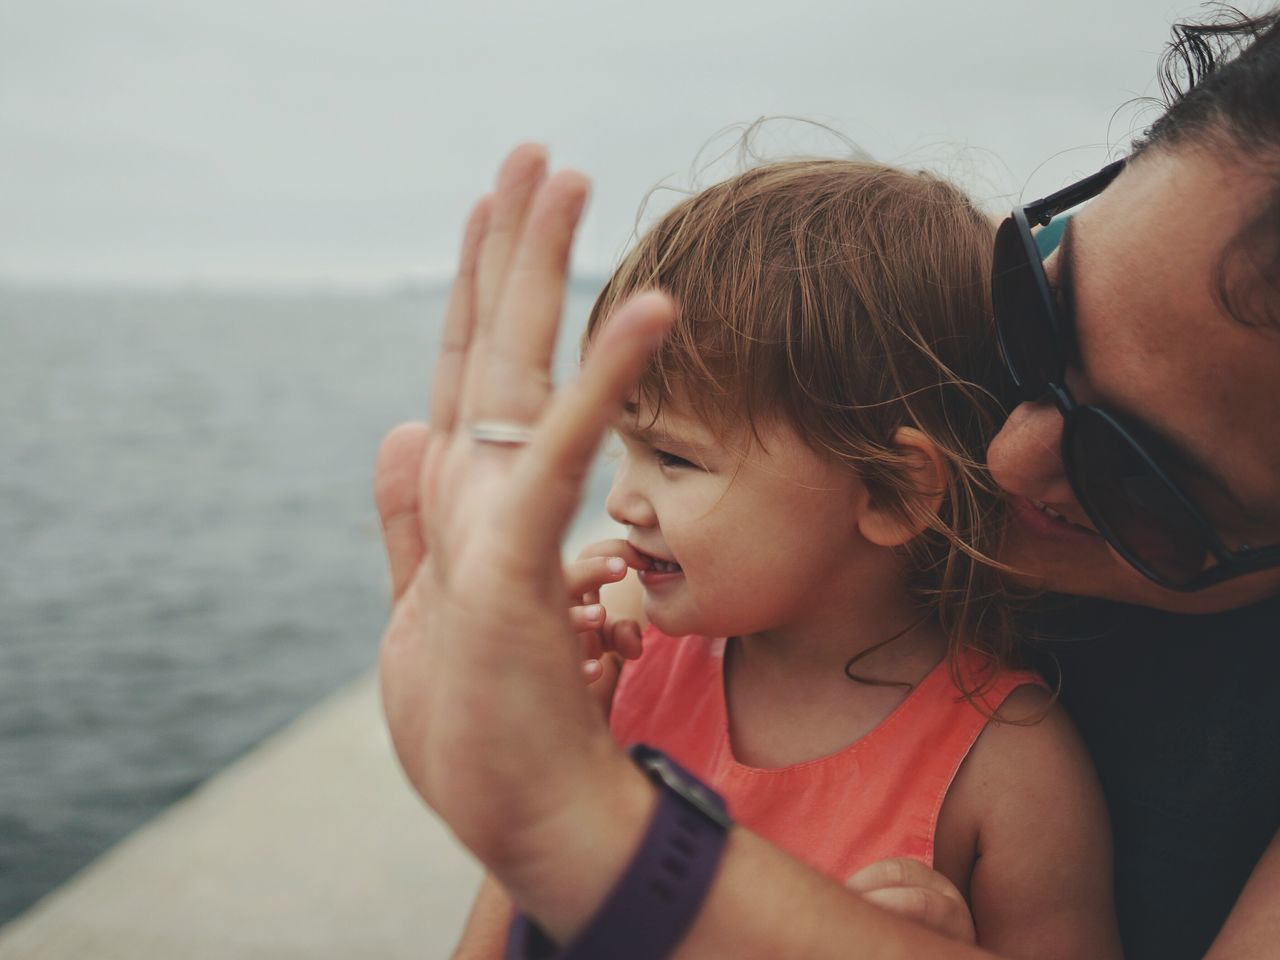 waving goodbye. focus on foreground Tranquility human face person Children goodbyes Saying goodbye Motherhood water ocean